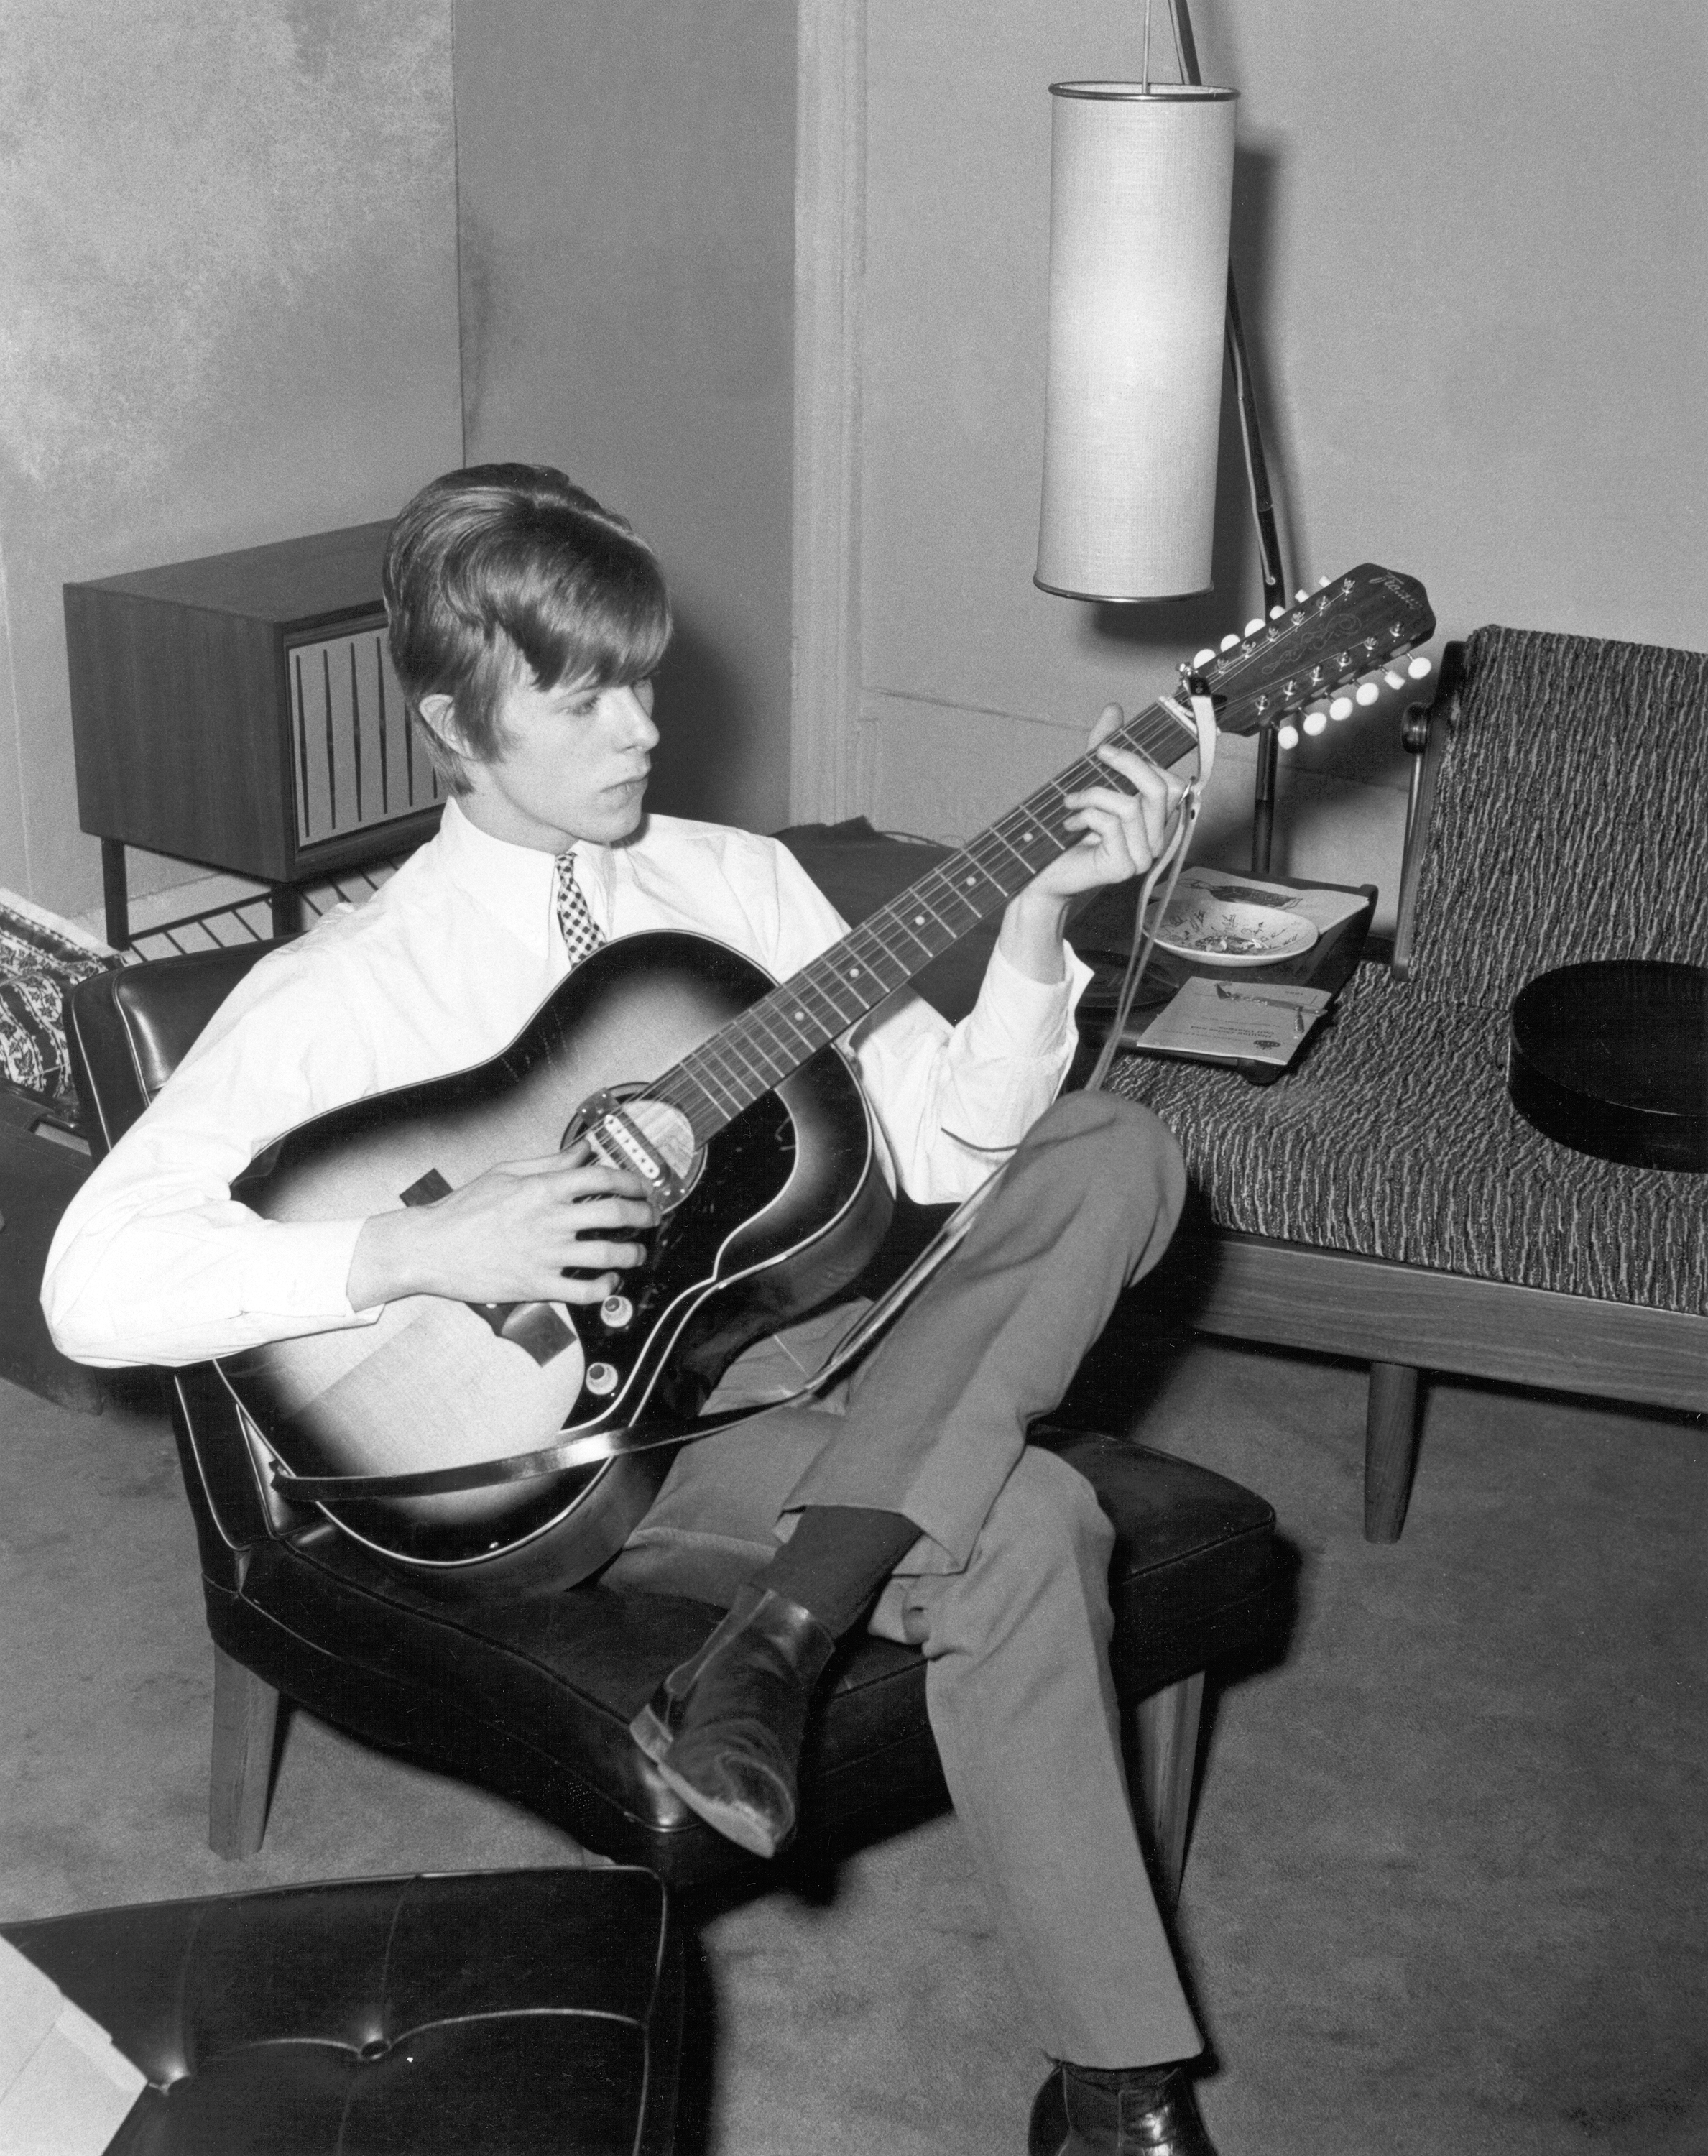 David Bowie during a portrait session in 1966 in London.